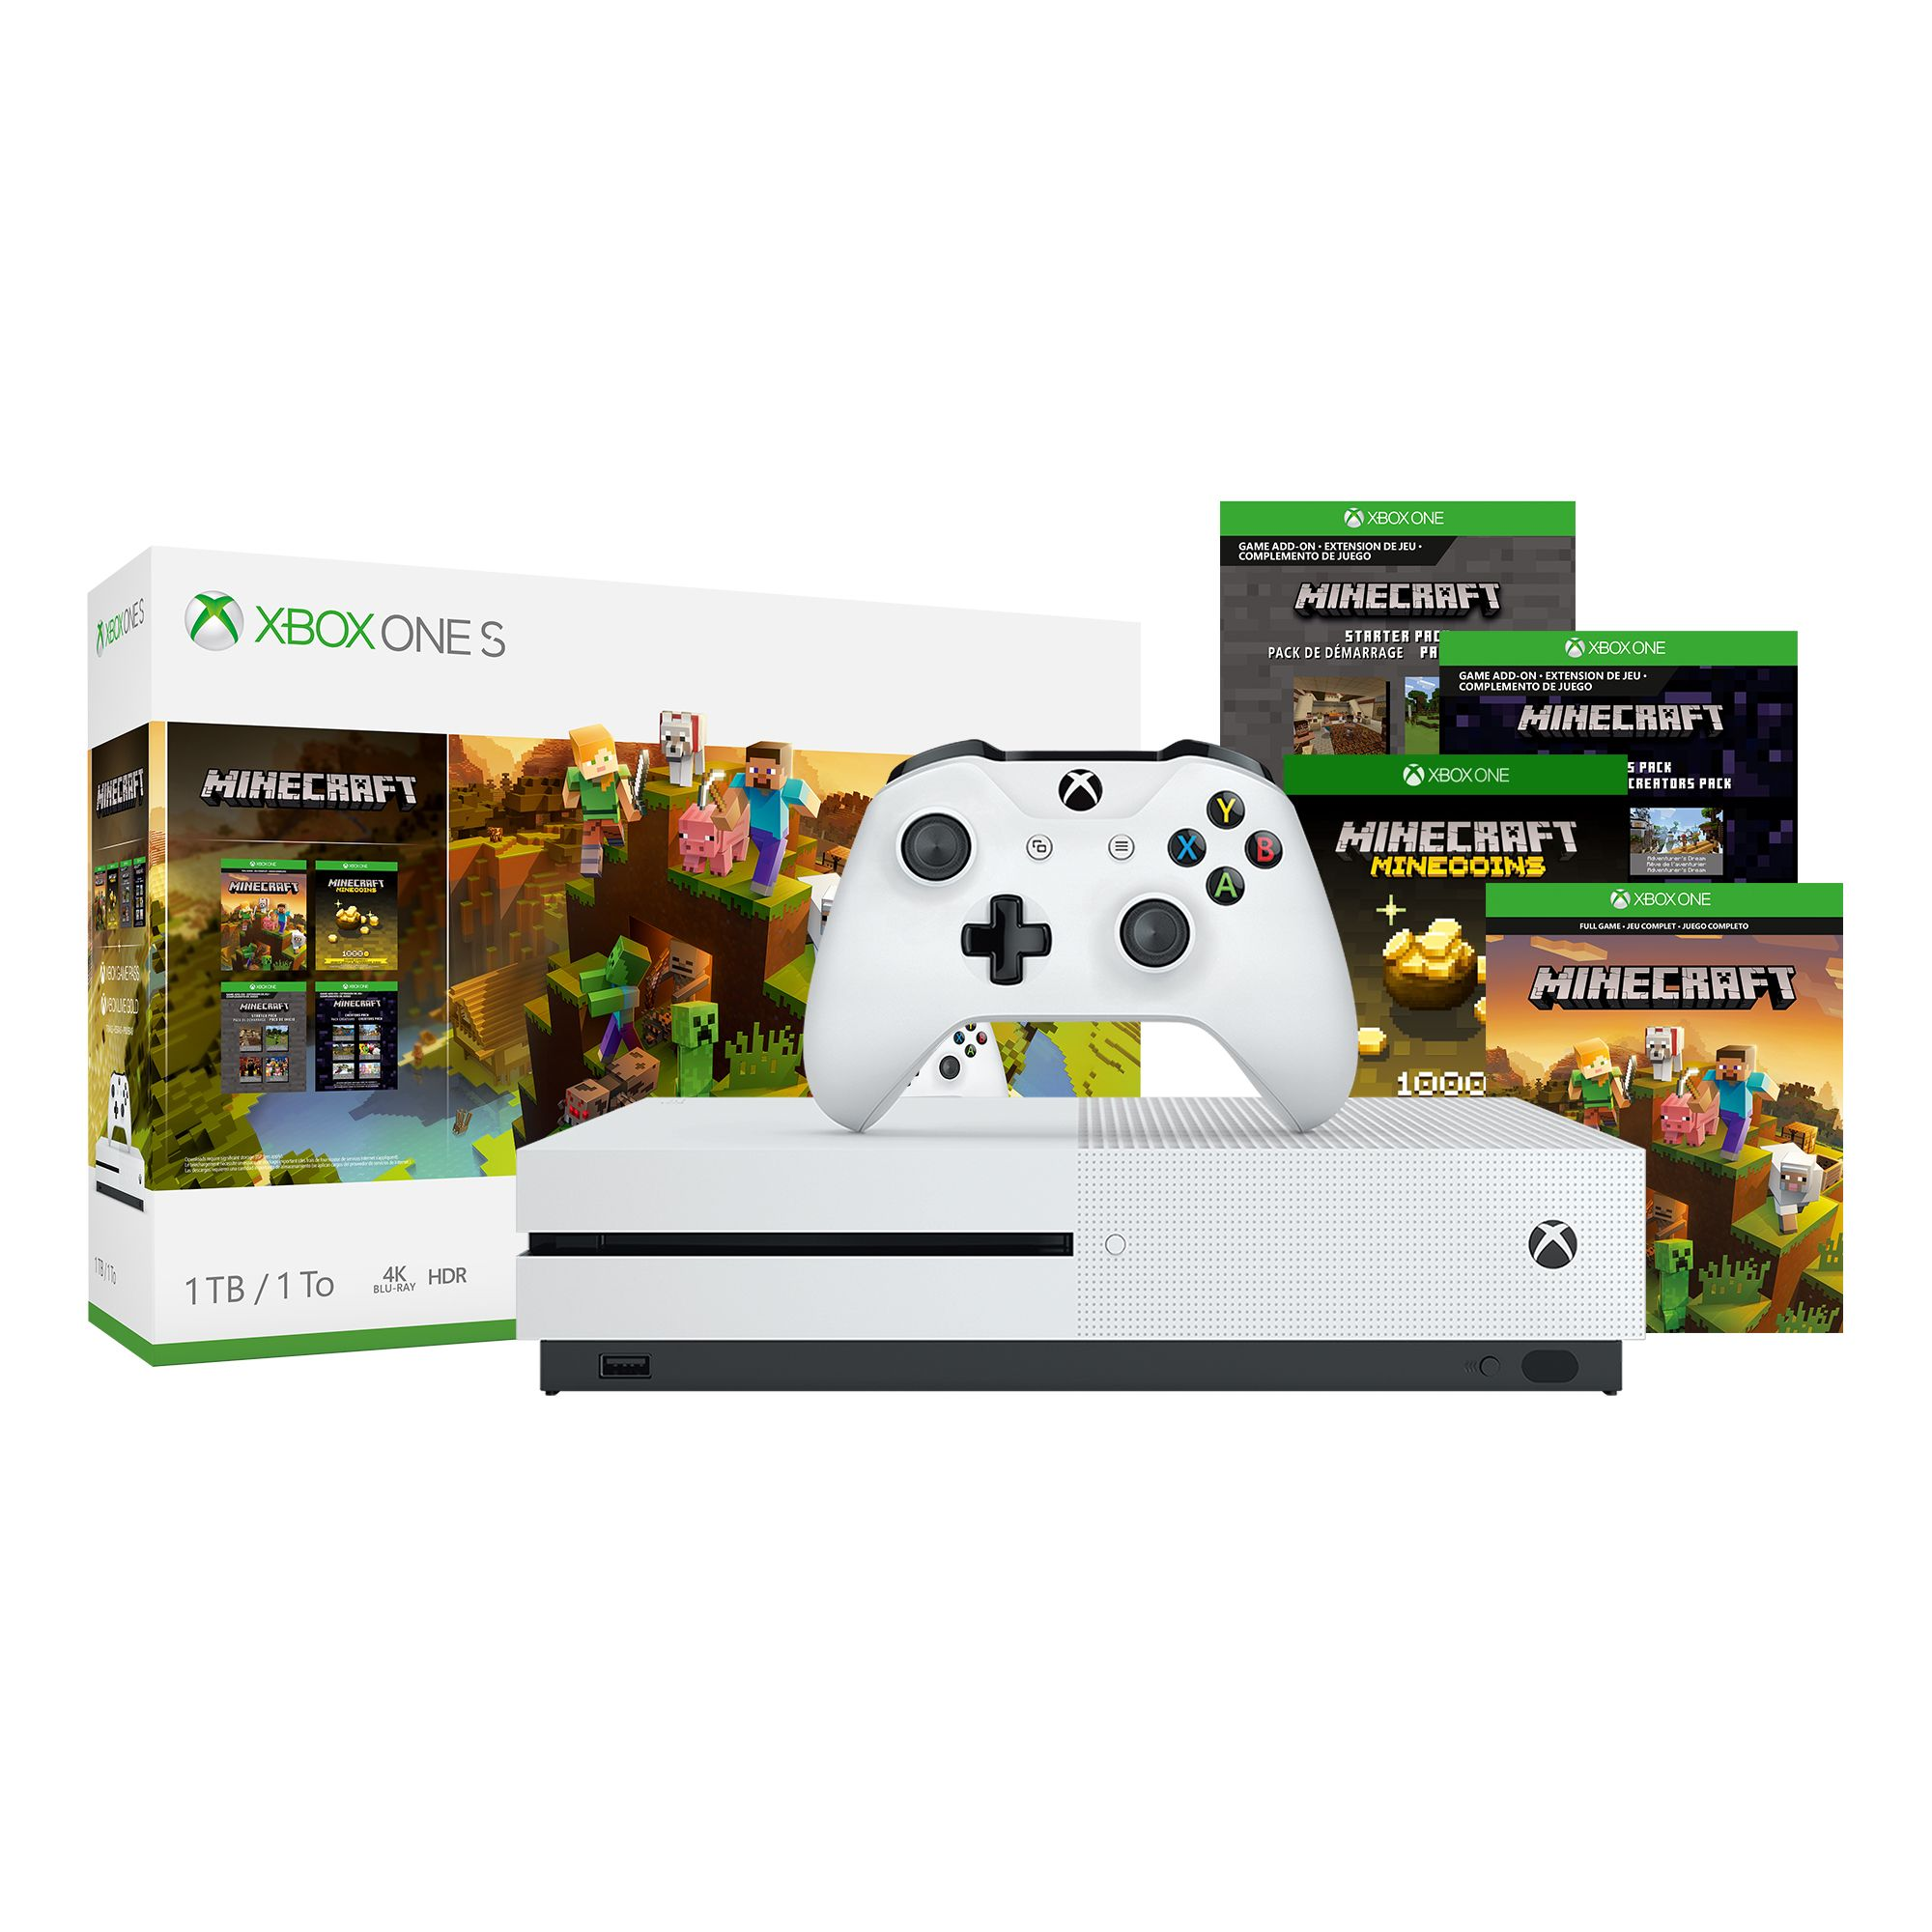 Microsoft Xbox One S Minecraft Creators Bundle ONLY $10 Shipped